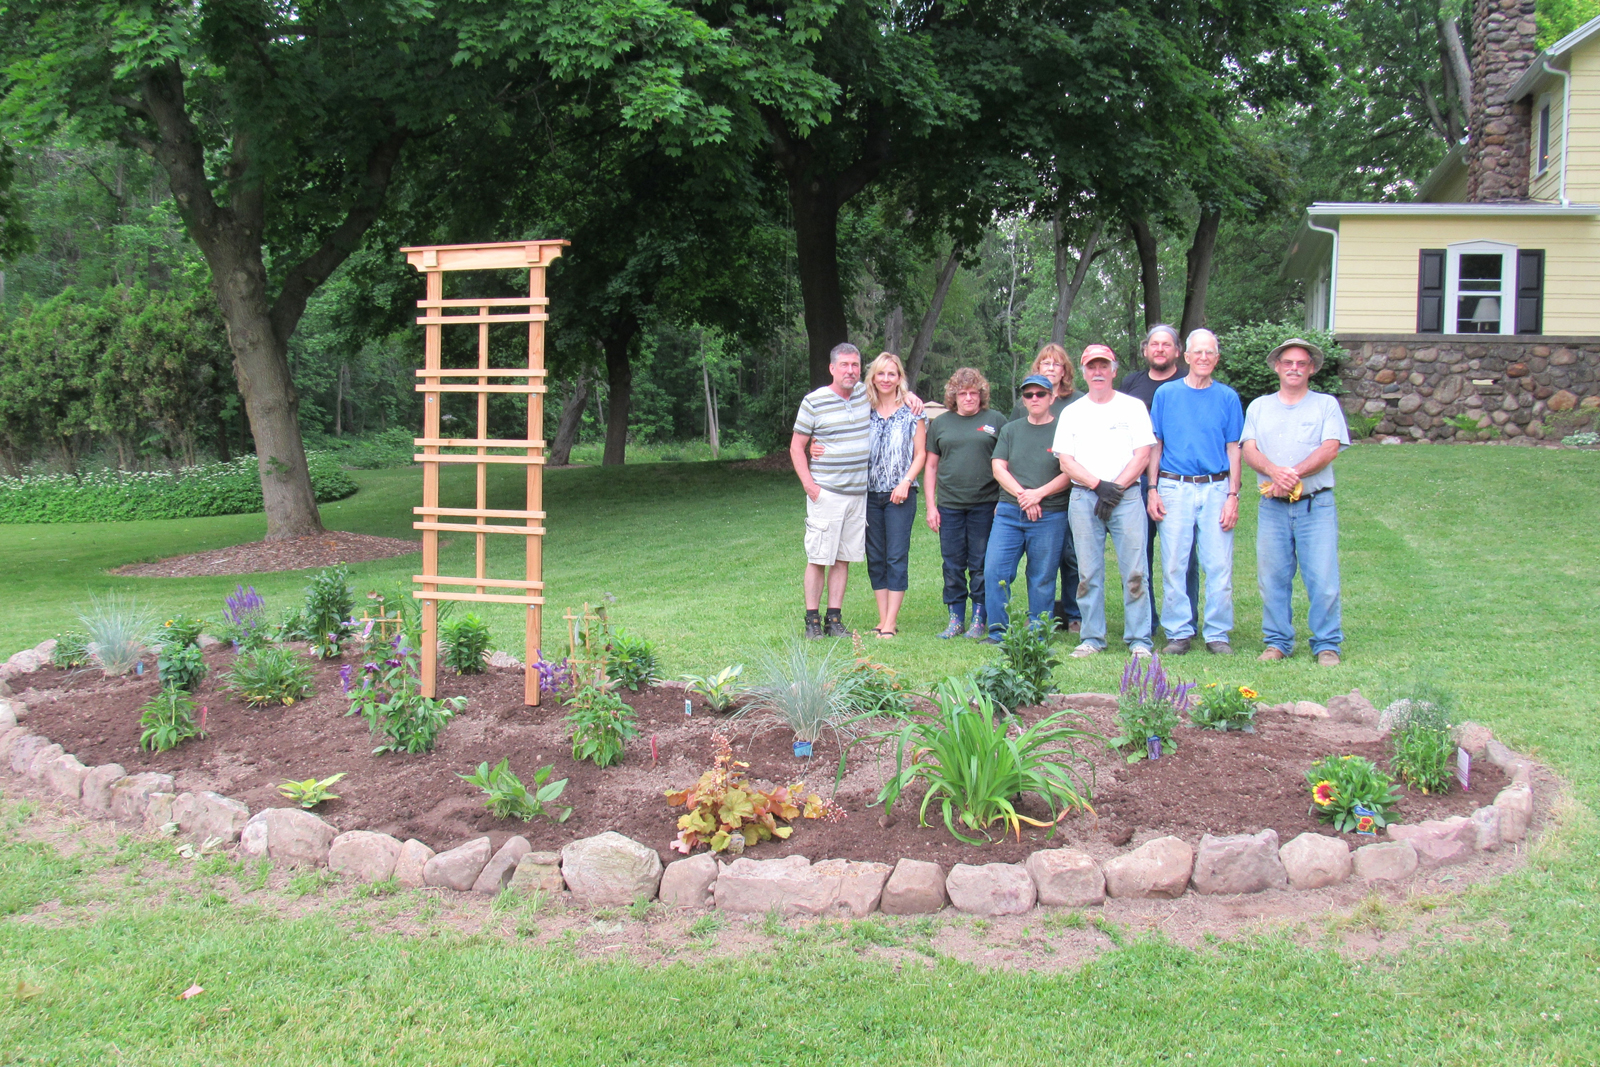 Orleans County Master Gardeners pose with homeowners Dan and Jill Ryan (far left) behind the newly installed perennial garden. K. Gabalski photo